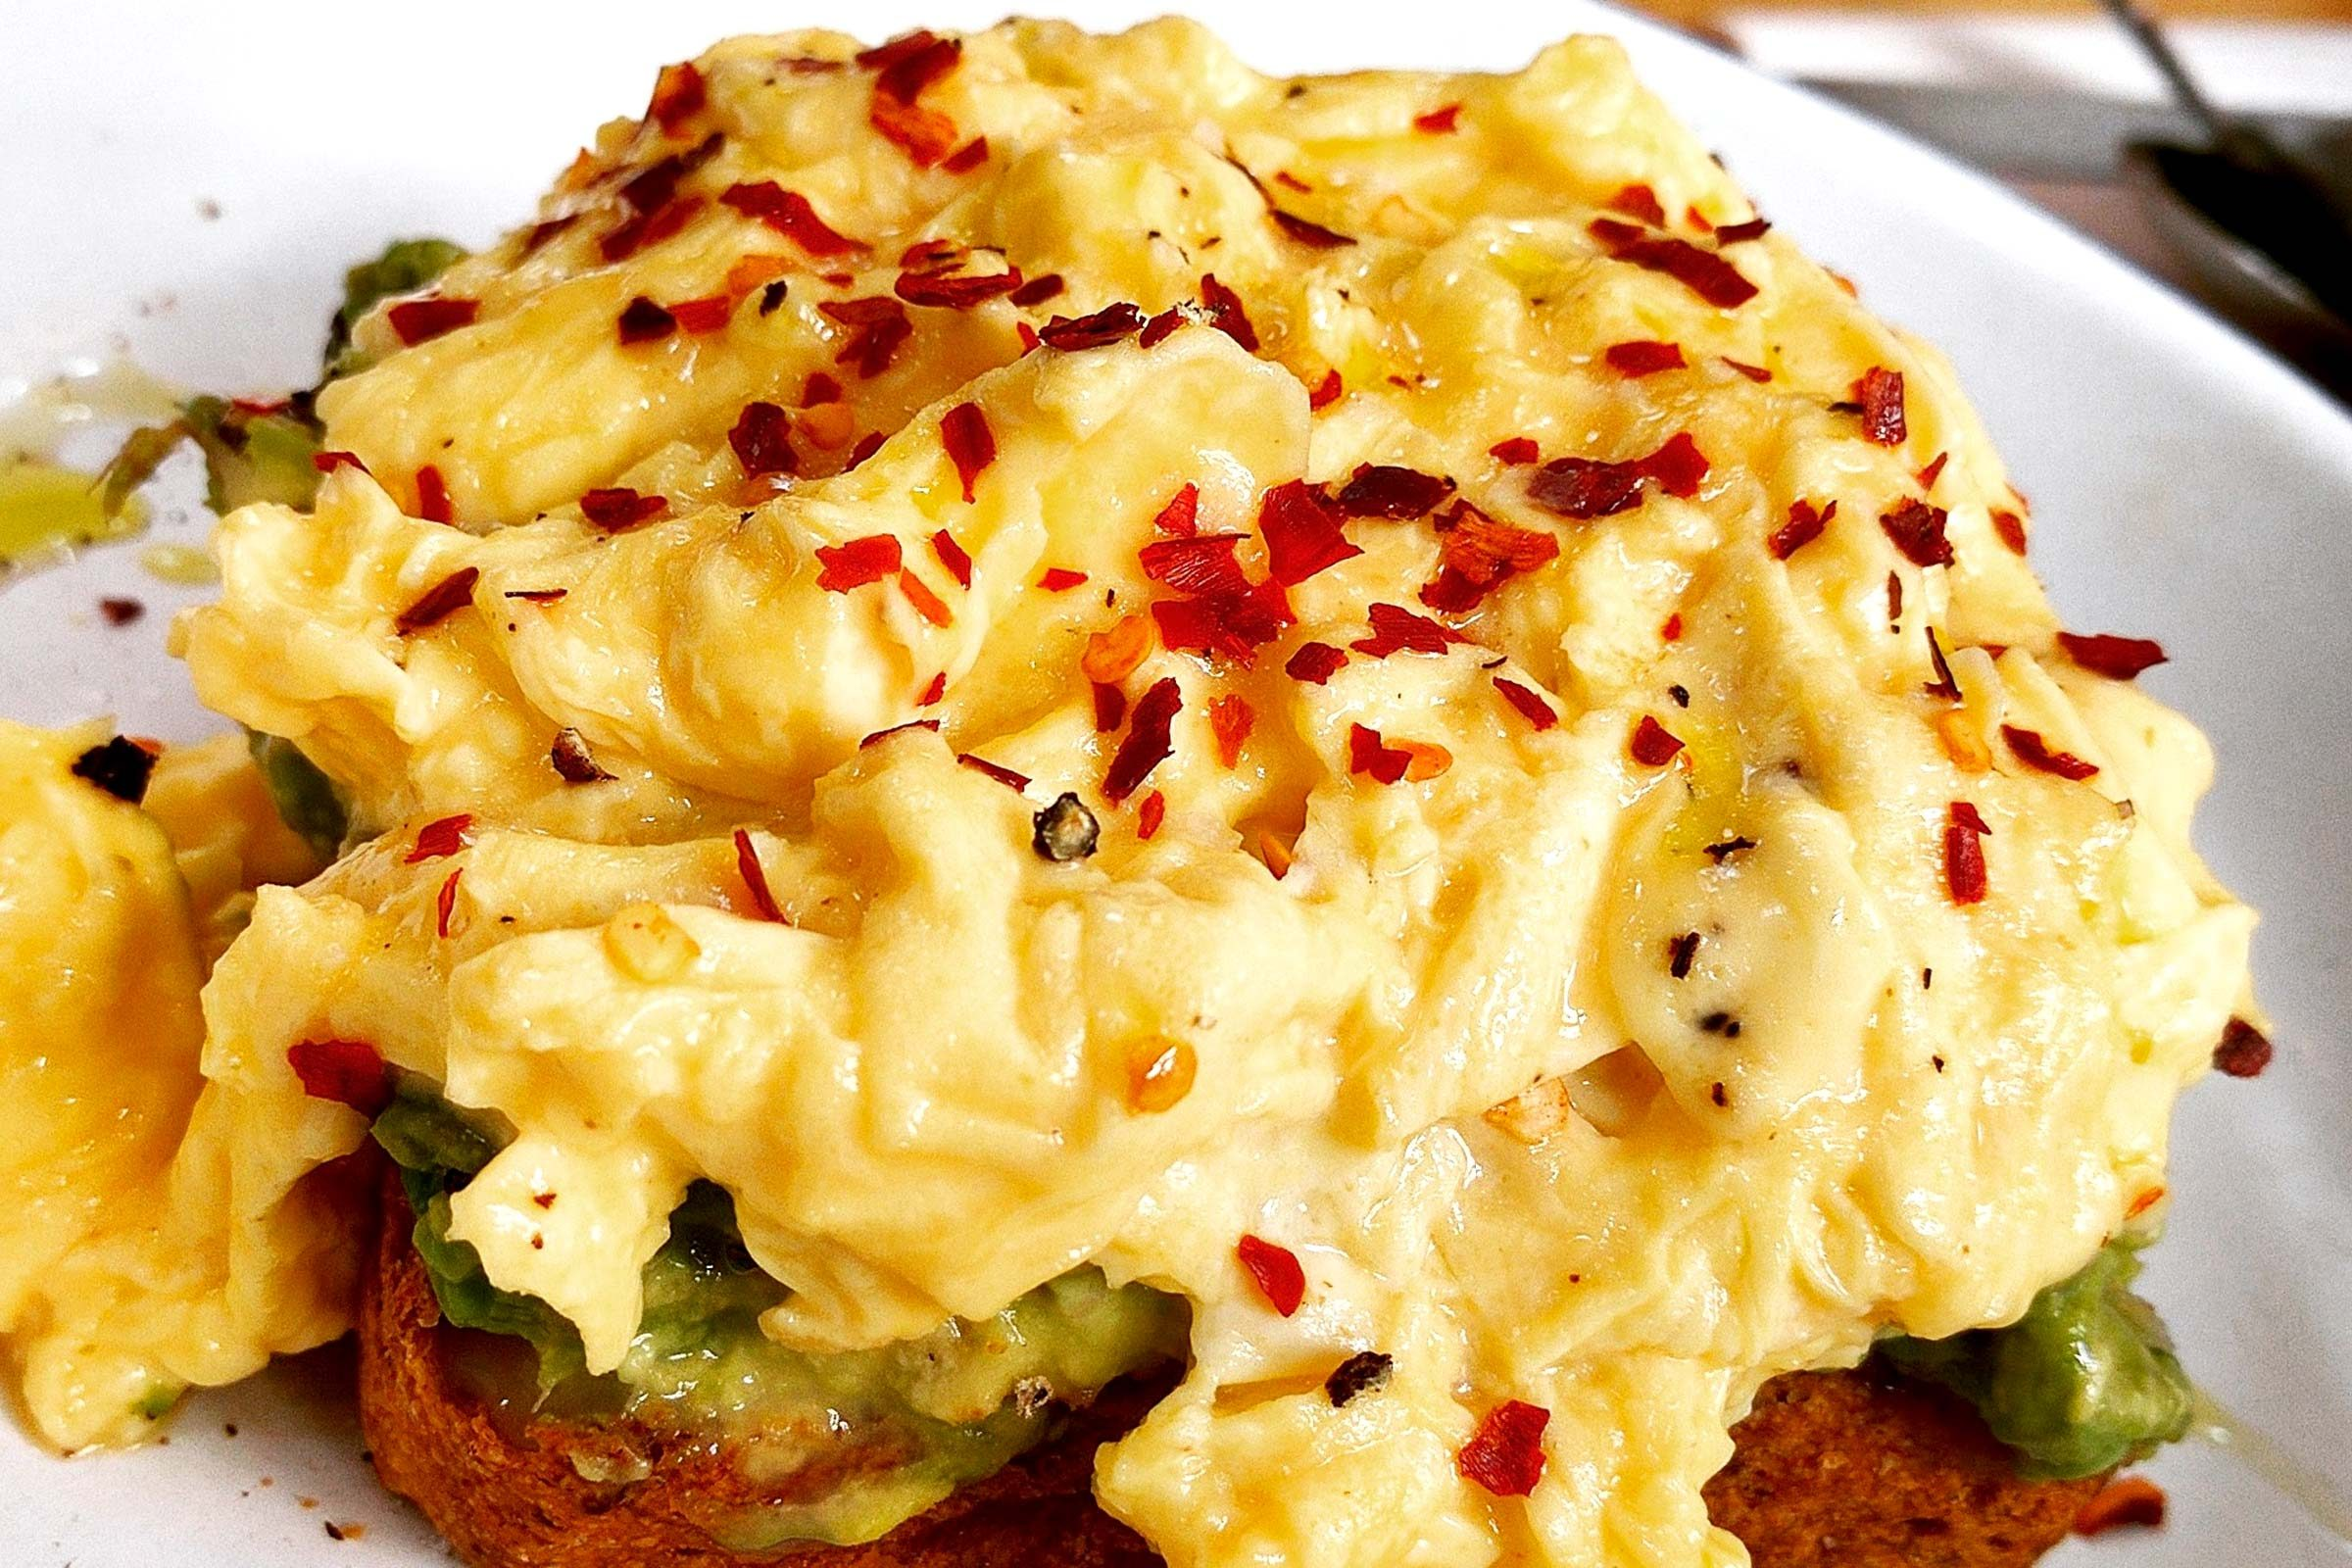 refuel after exercise | scrambled eggs